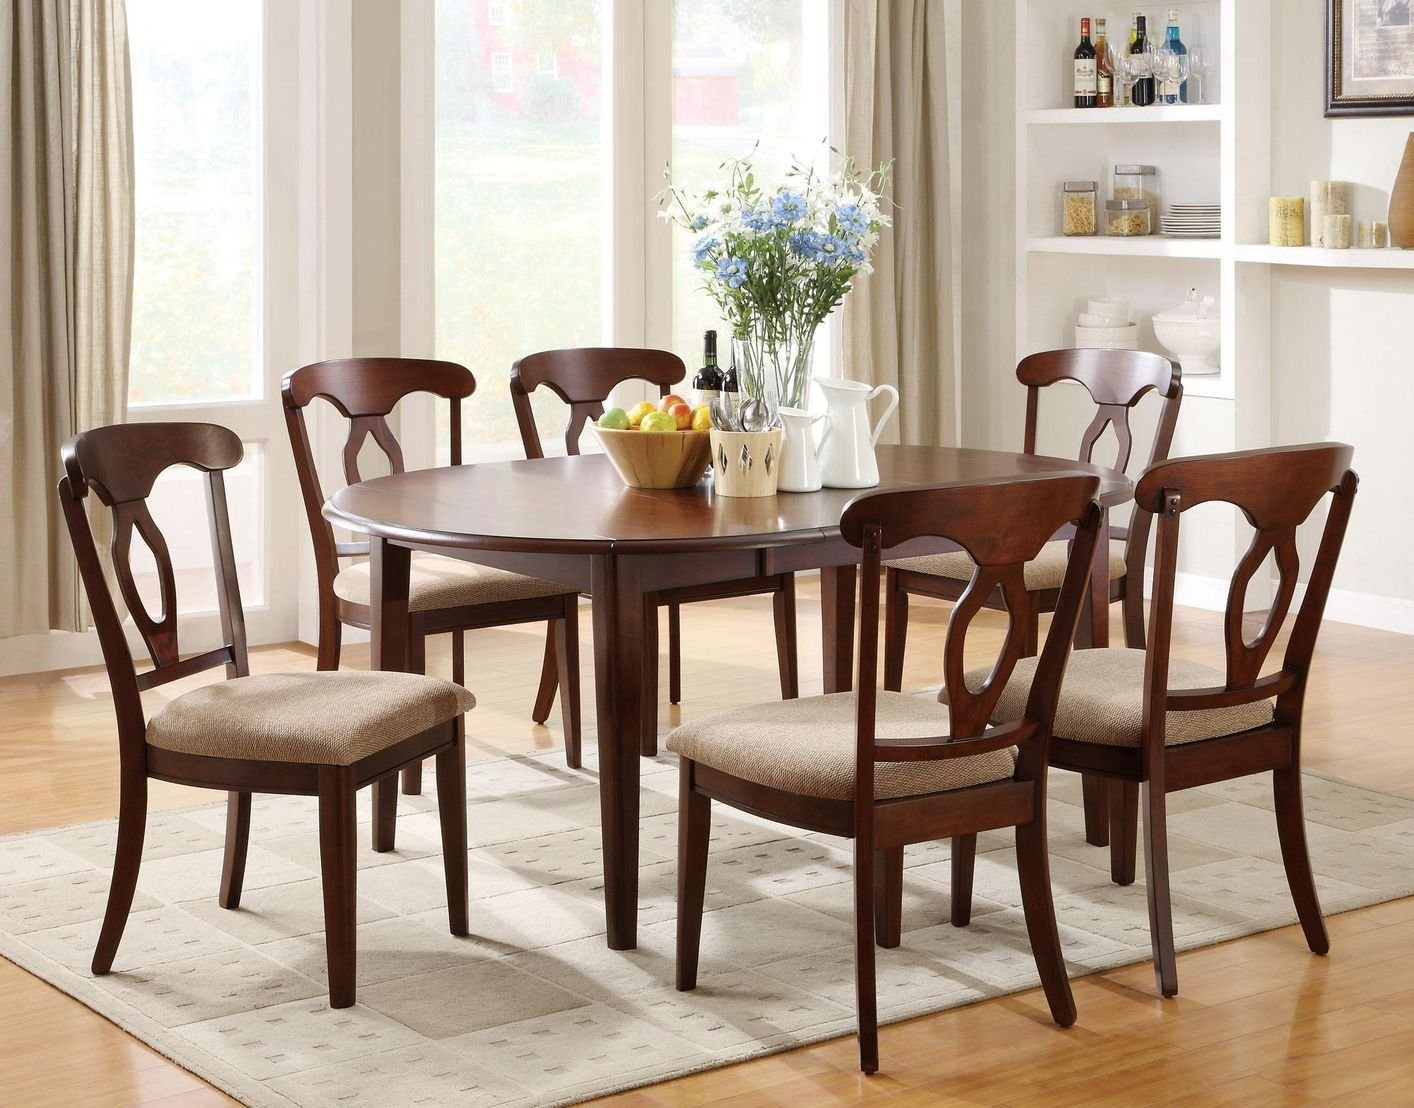 Accommodate an array of dinner party sizes with this versatile oval dining  table.